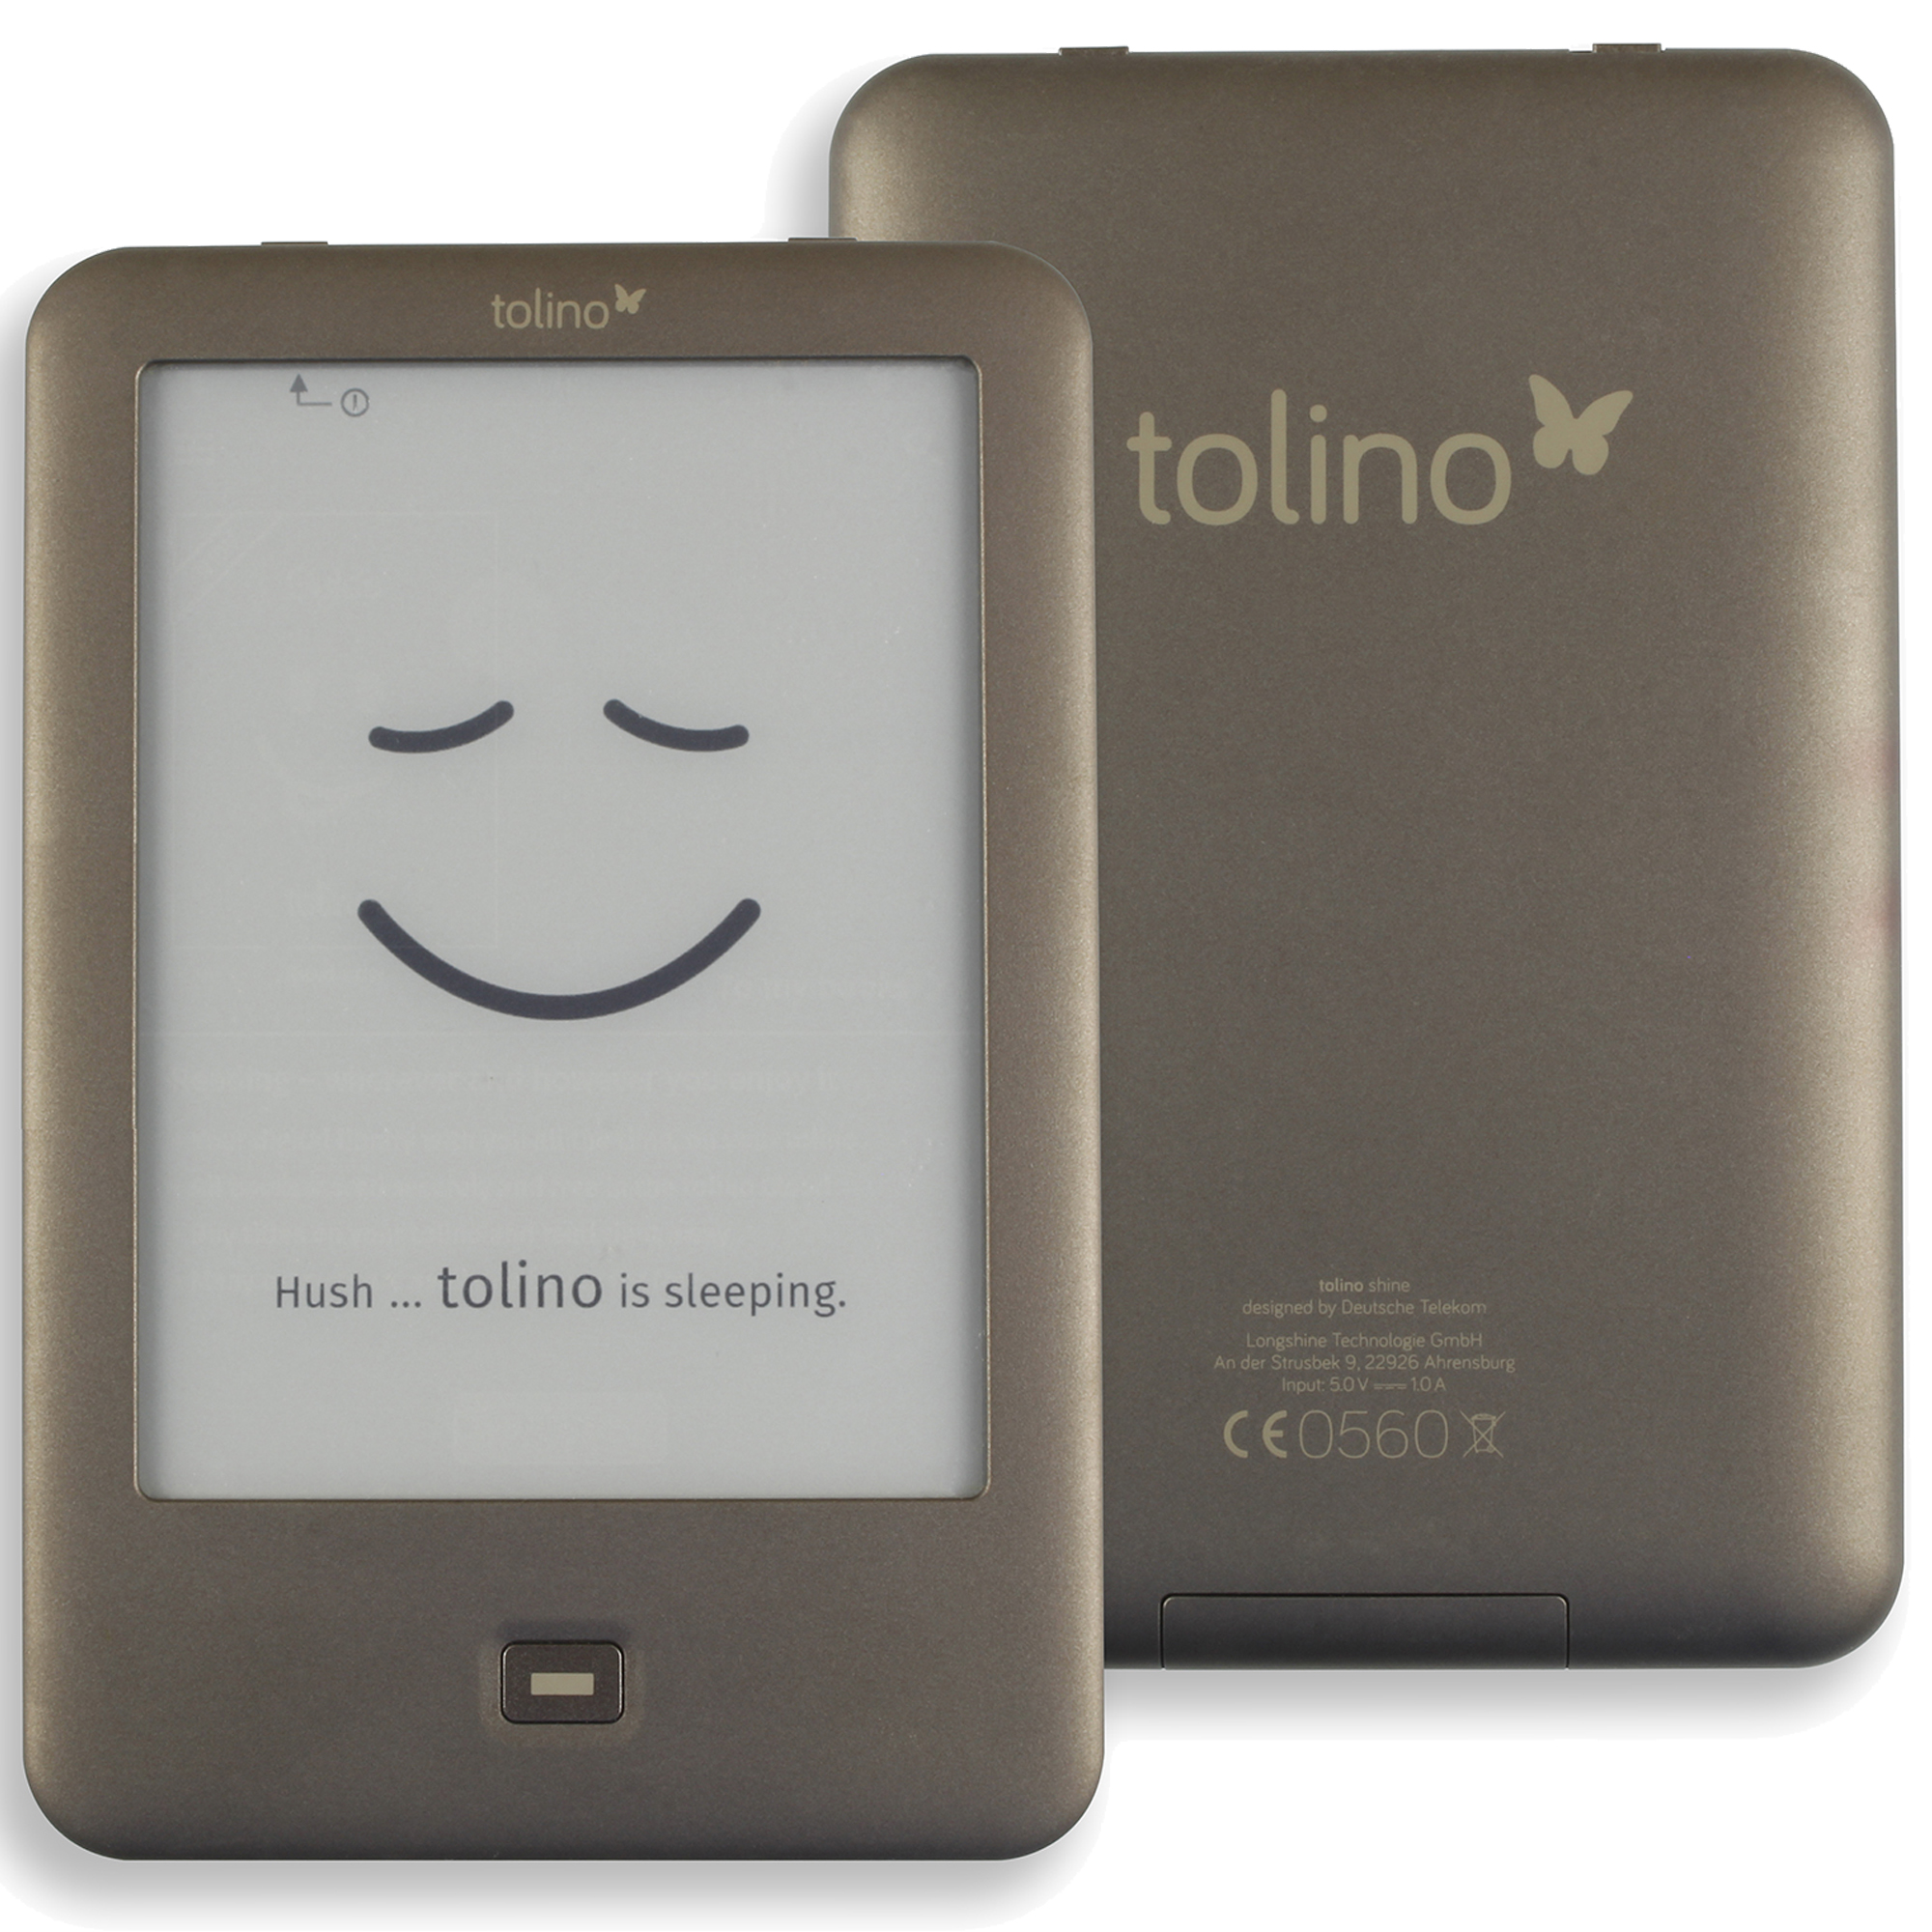 Built in Light e-Book Reader WiFi ebook Tolino Shine e-ink 6 inch Touch Screen 1024x758 electronic Book Reader image